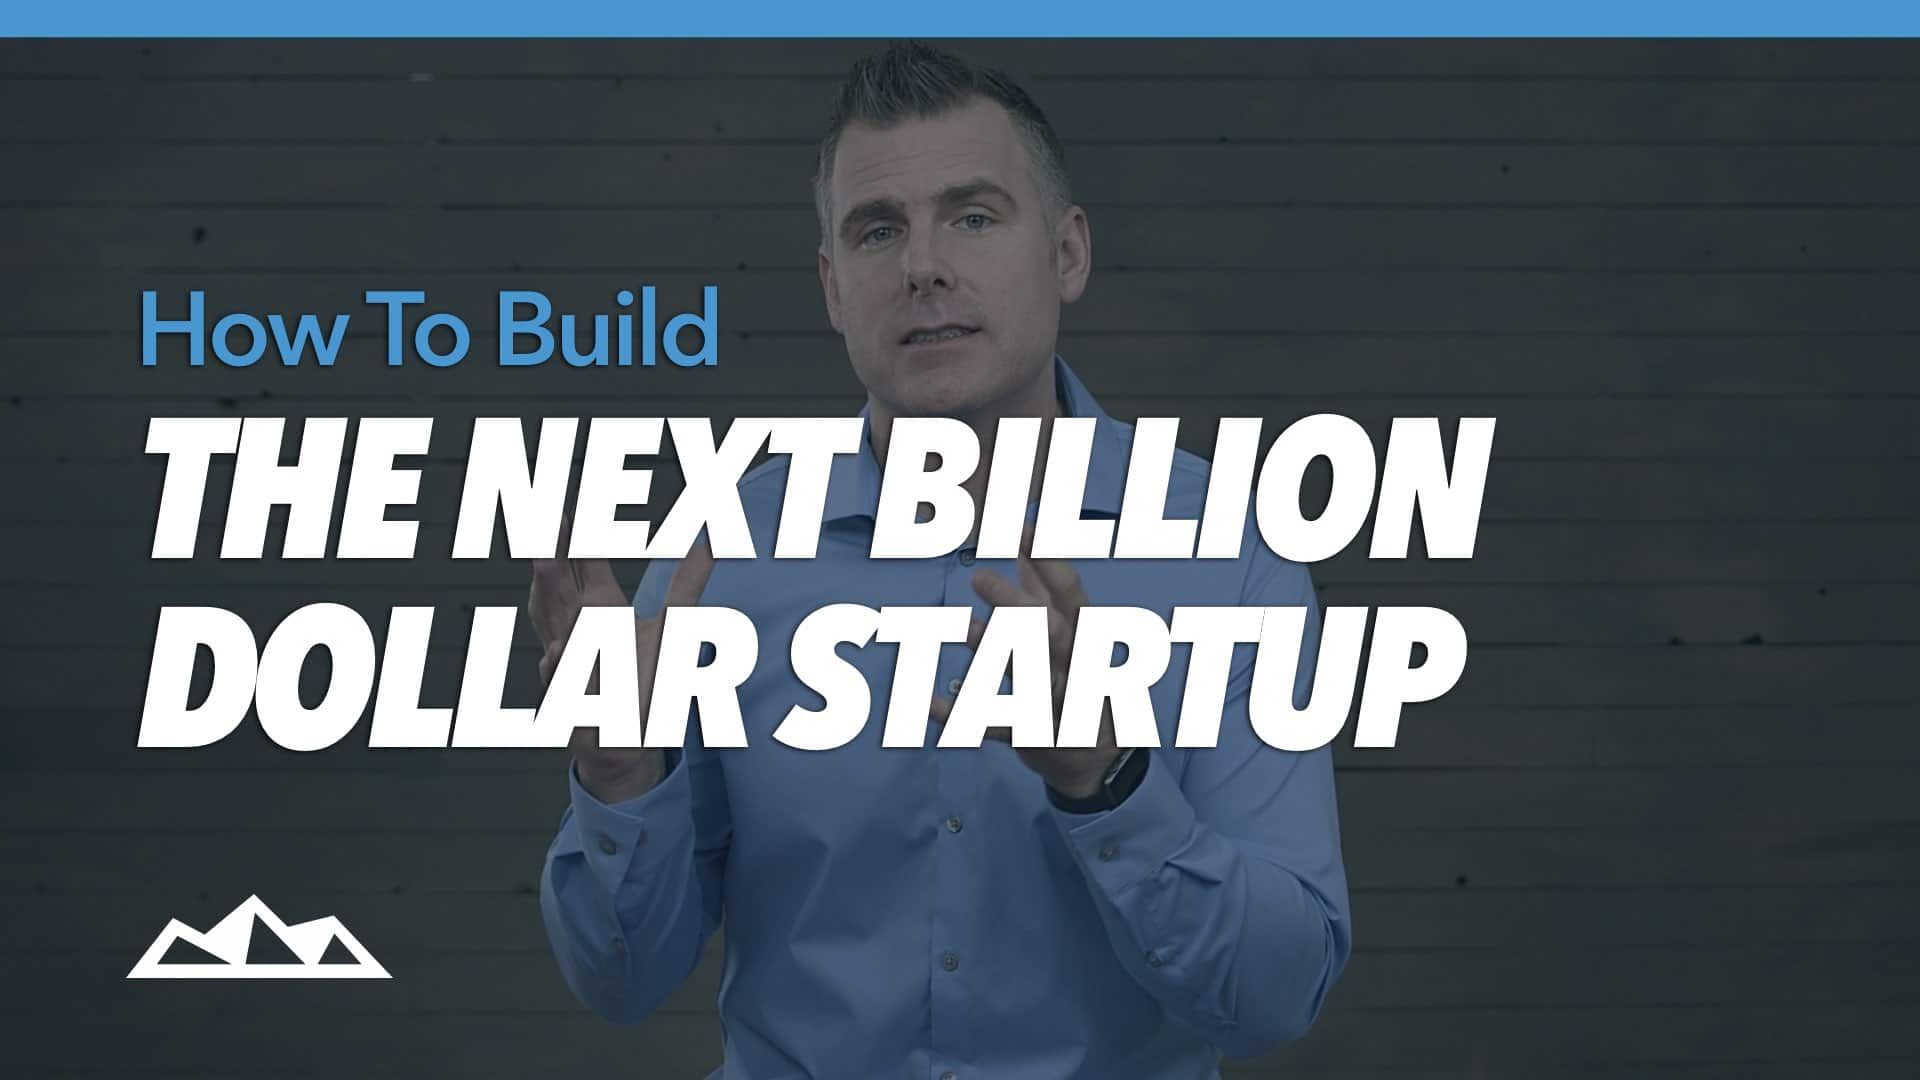 Want to Launch the Next Billion-Dollar Startup? Here's 4 Suggestions By David Sachs